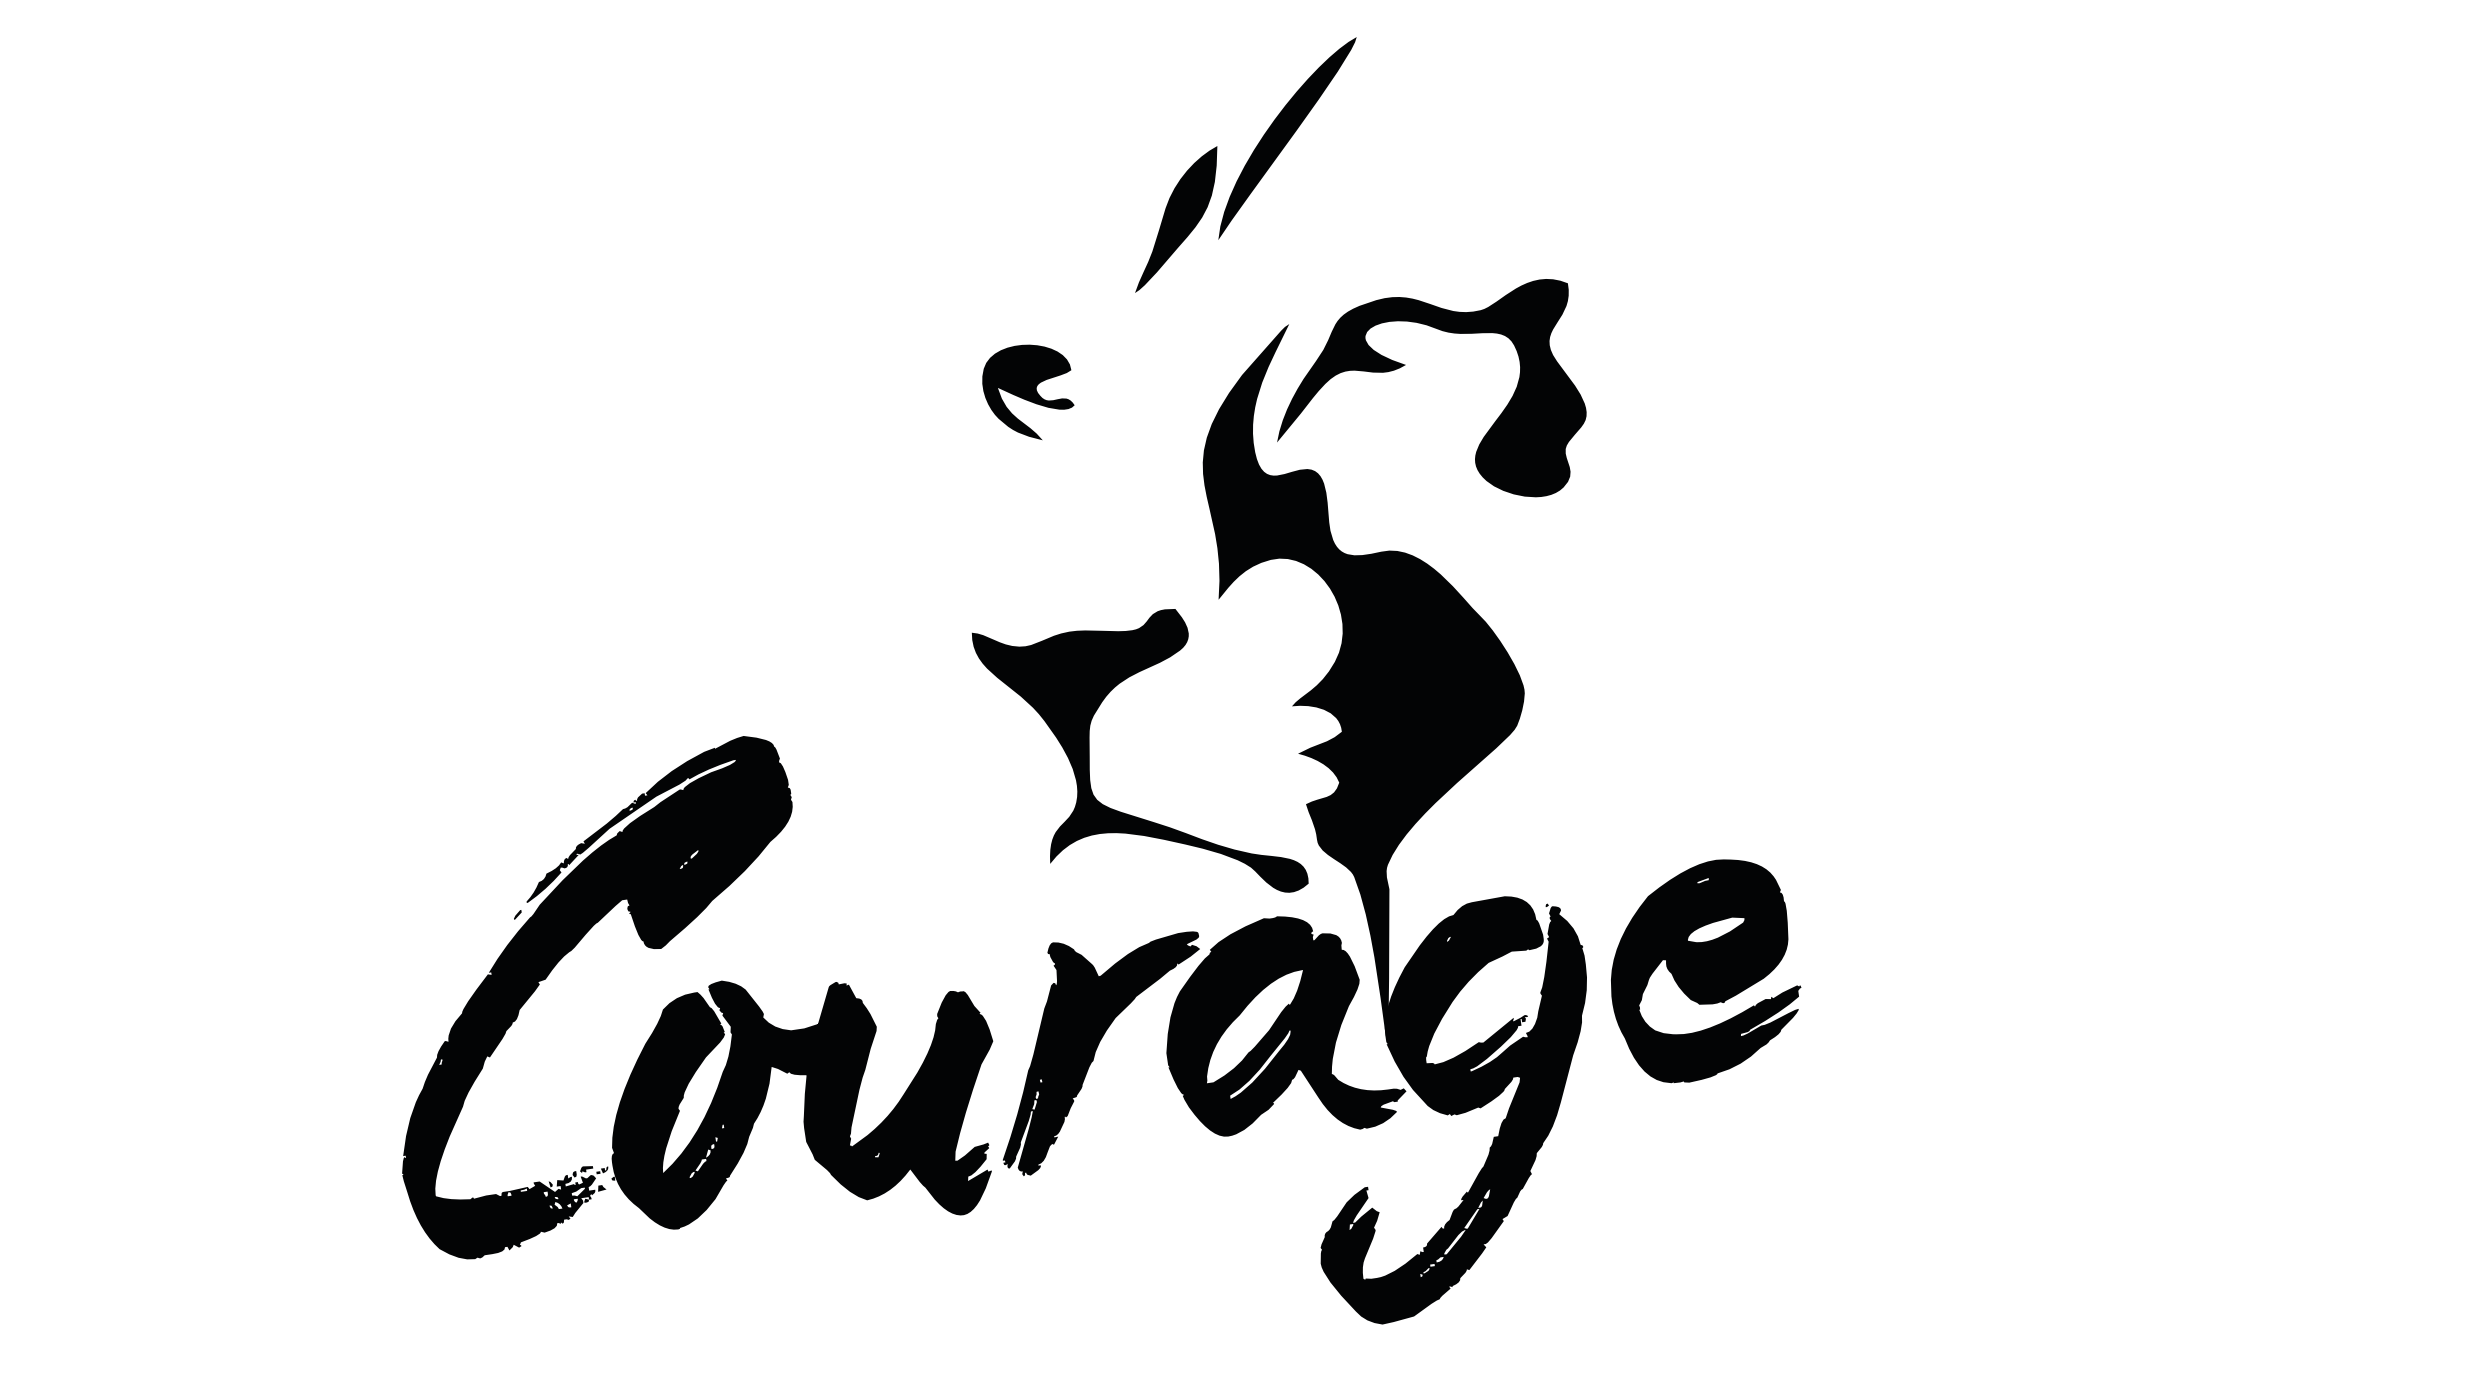 Courage Click Auction